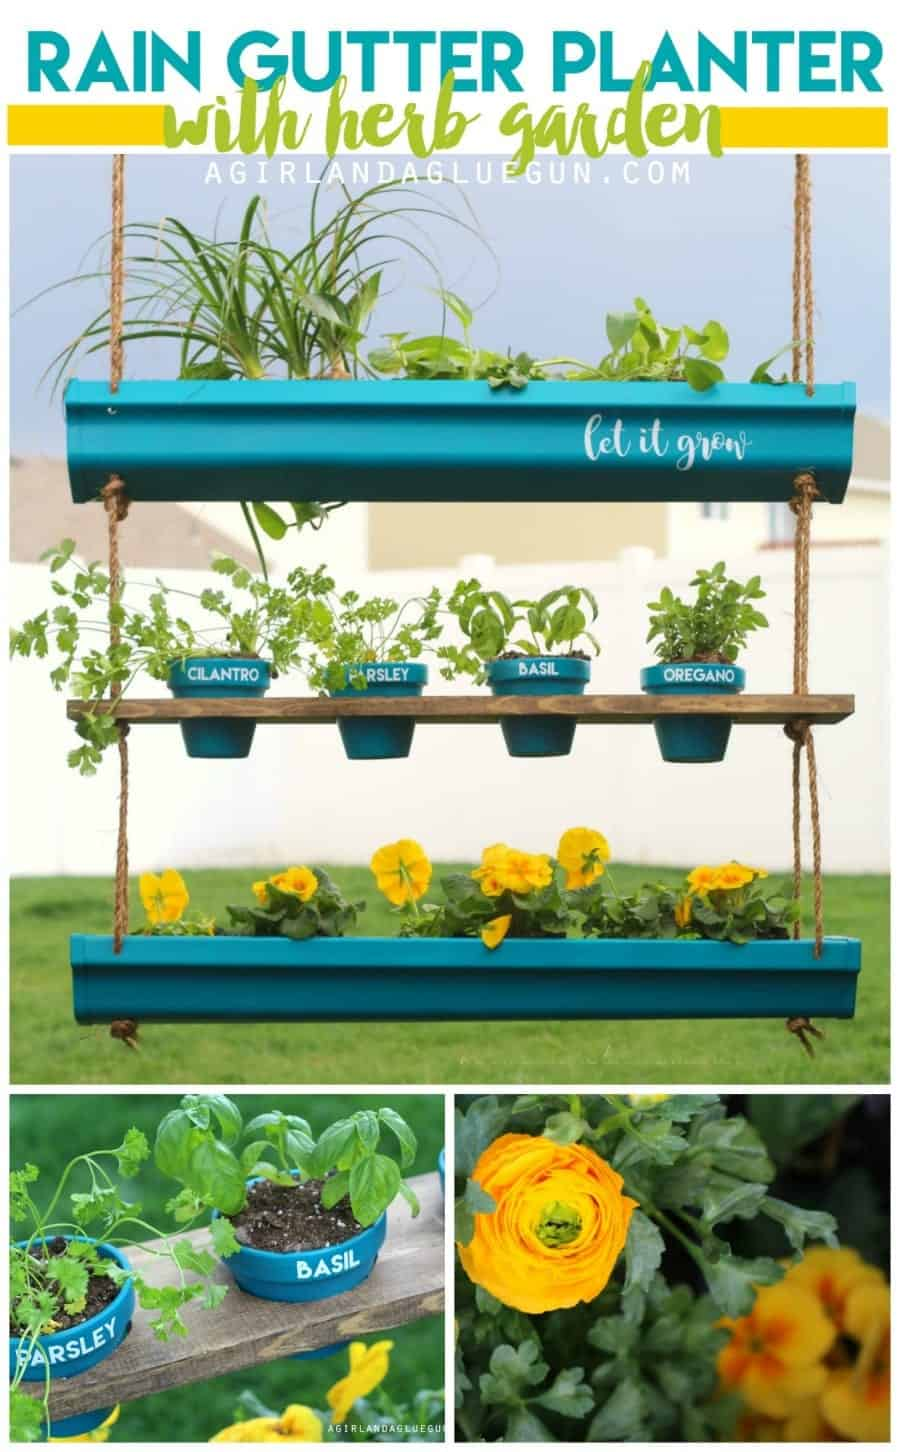 hanging rain gutter planter with herb garden